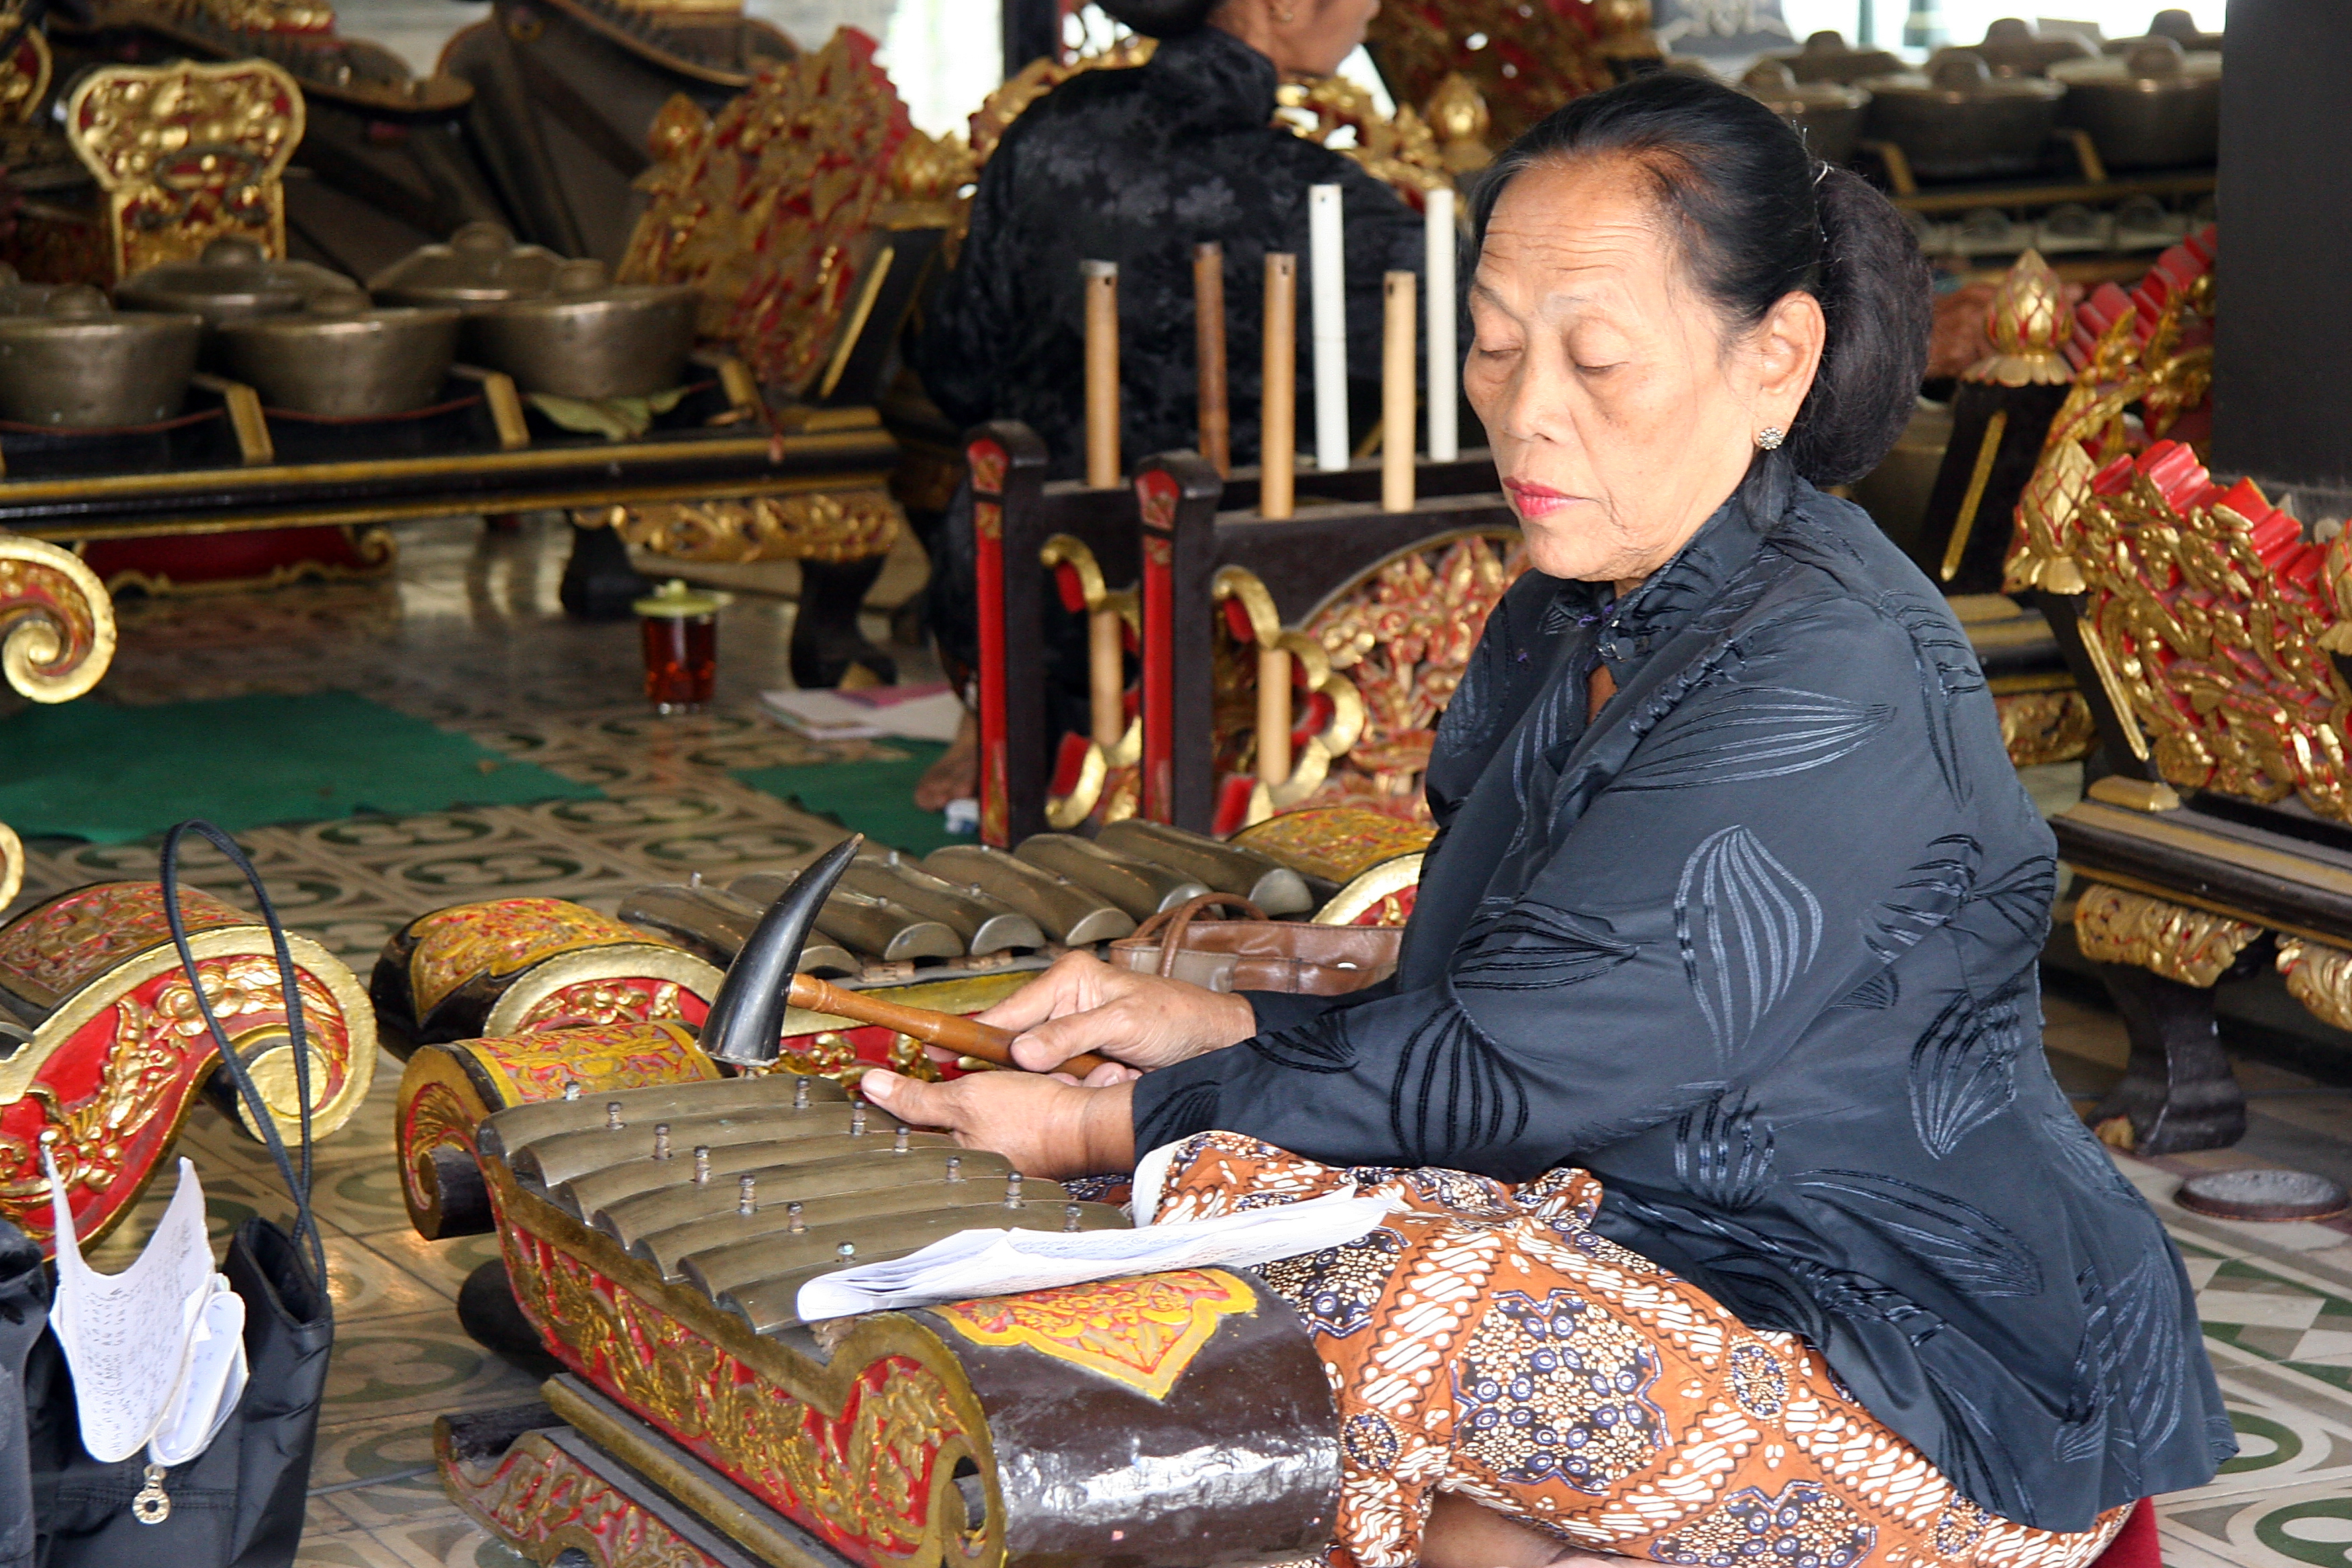 Playing the gamelan in the sultan's palace, Java Yogyakarta Indonesia 1.jpg - Indonesia Java Yogyakarta. Playing the gamelan in the sultan's palace